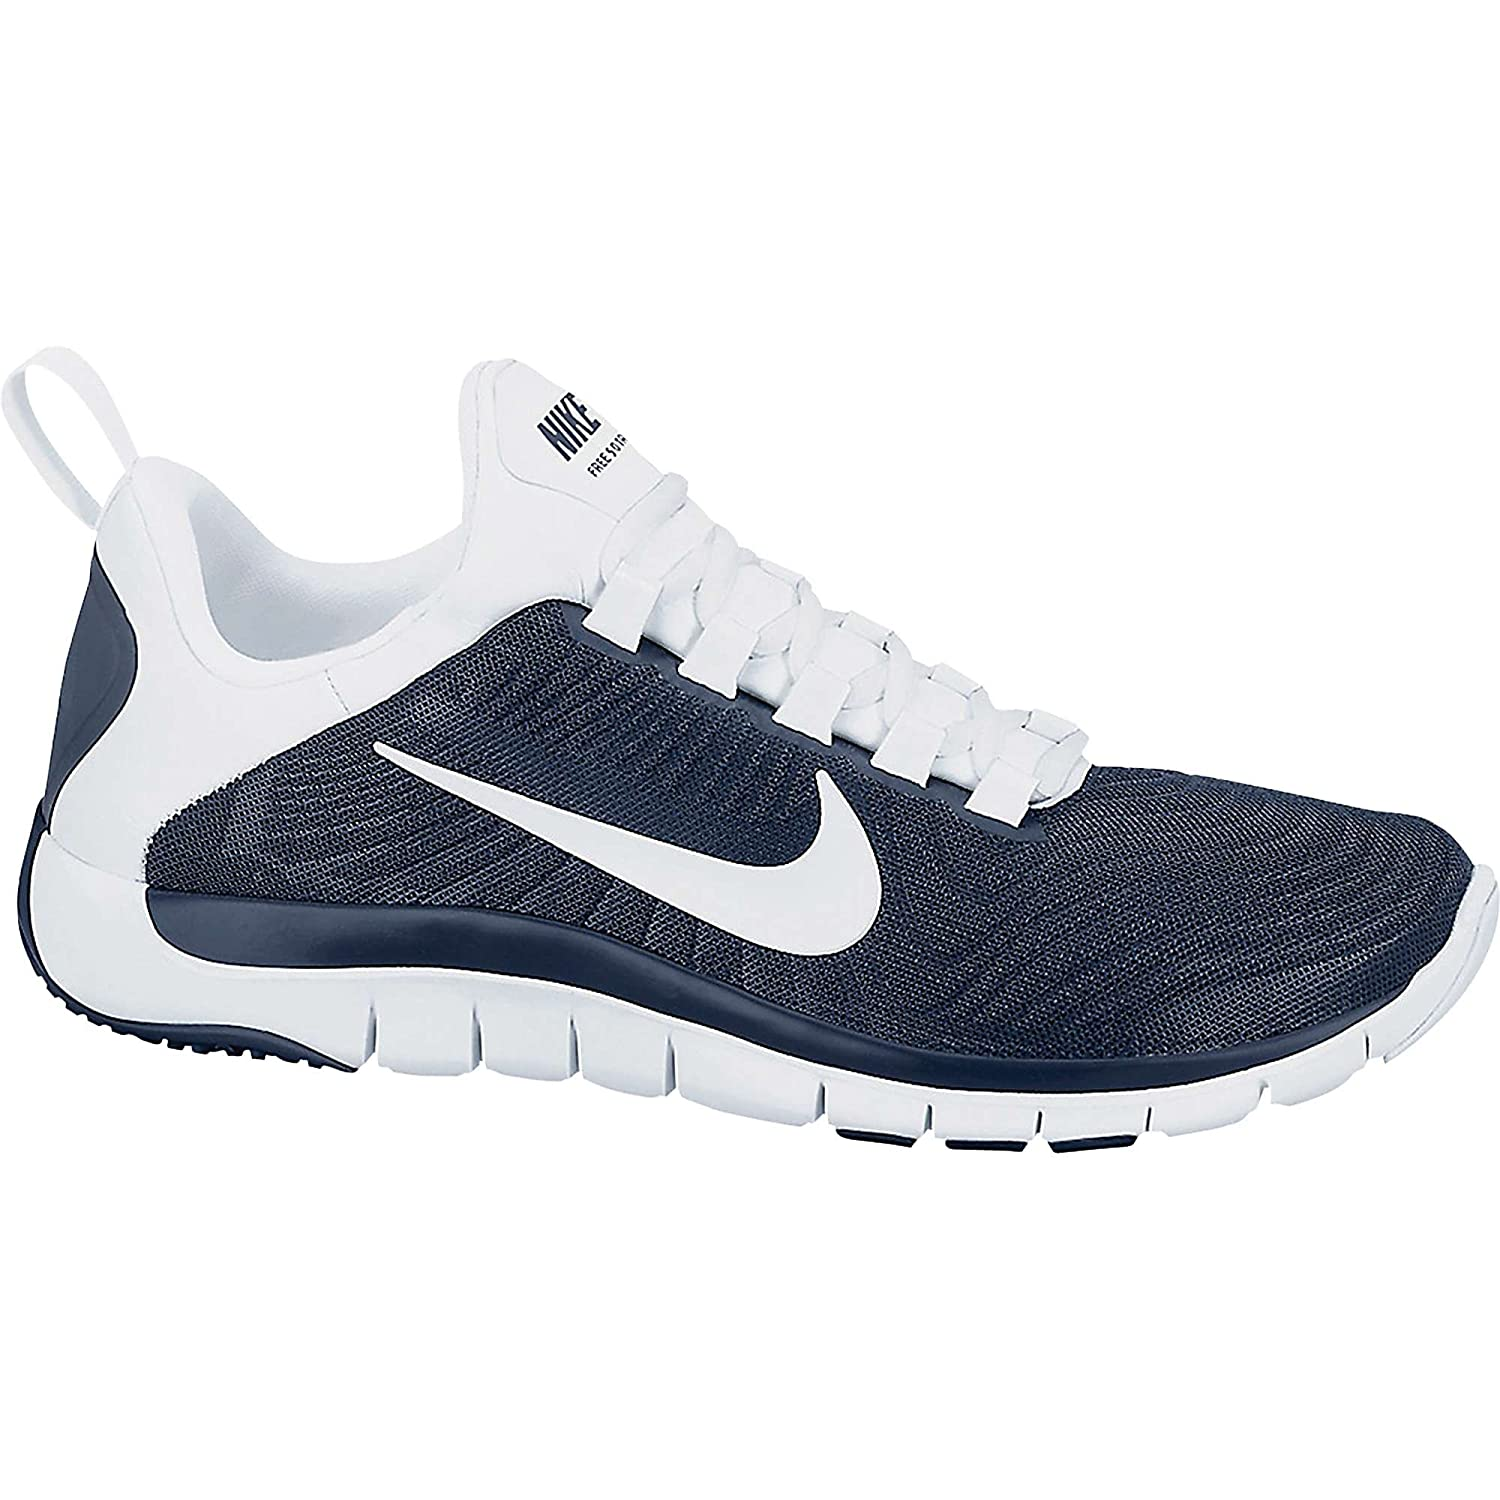 c8dd355cf53c5 well-wreapped Nike Free Trainer 5.0 TB Men s Training Shoes - Navy White